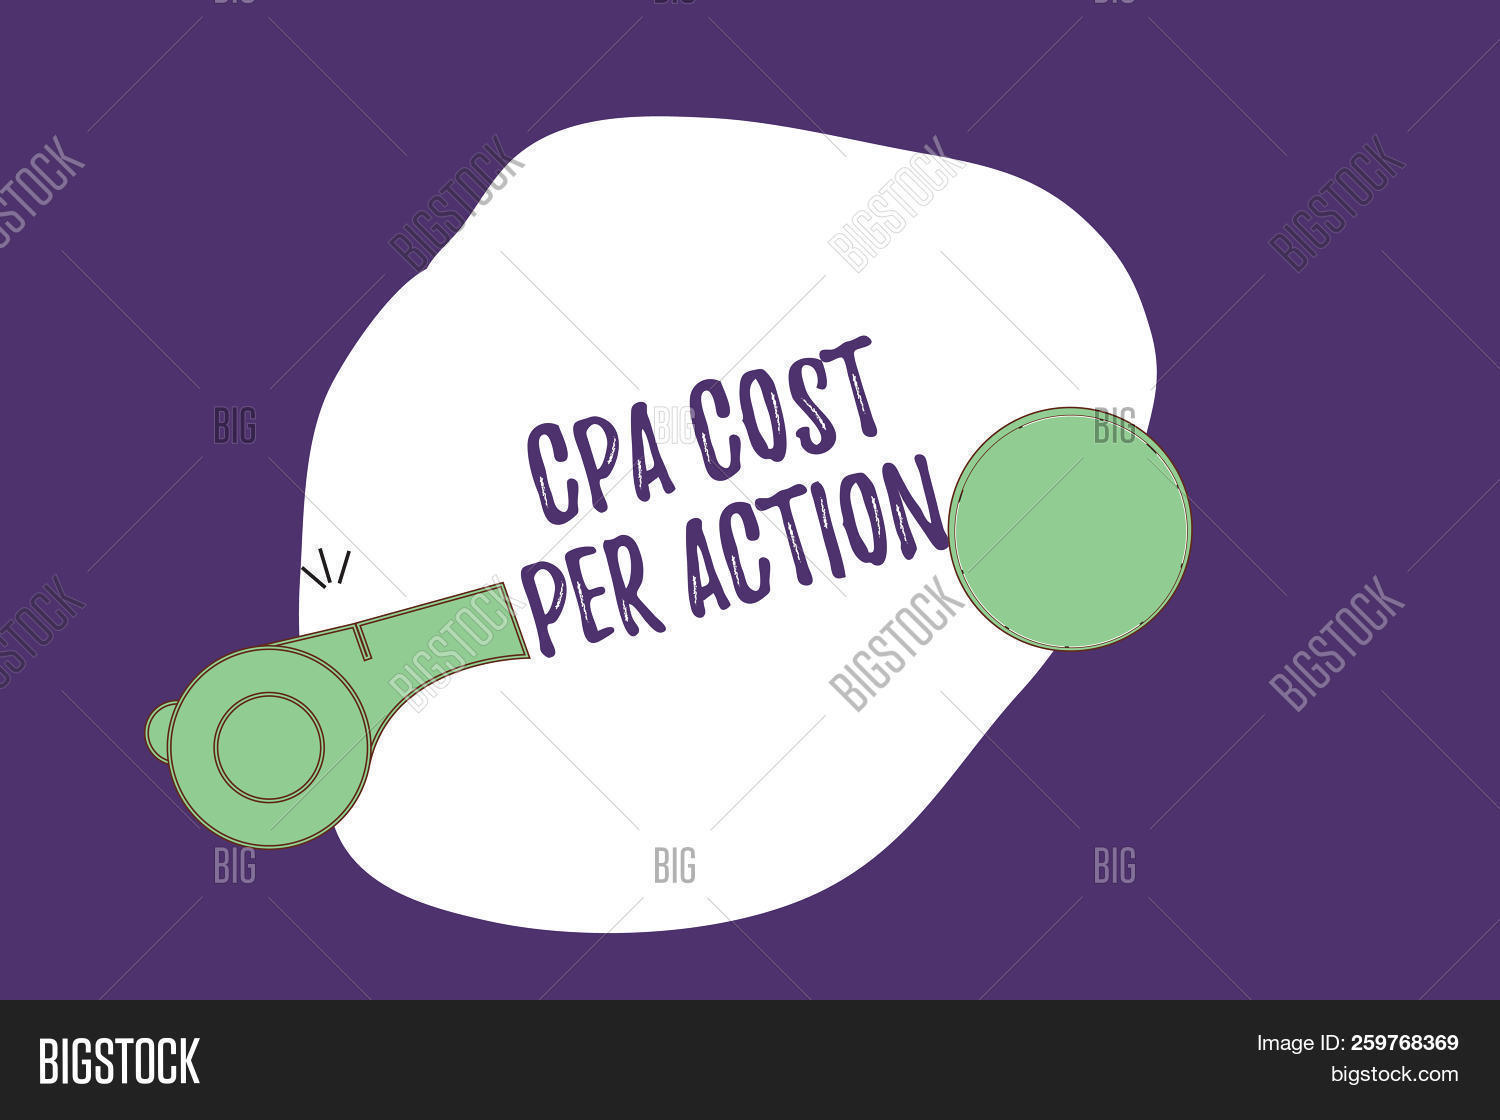 PPL,acquisition,action,advertise,advertising,affiliate,business,click,concept,consumer,contact,conversion,cost,cpa,cpc,data,digital,direction,email,form,inquiry,lead,link,media,network,newsletter,offer,online,page,paid,pay,per,plan,ppc,pricing,print,publisher,register,registration,request,sale,sign,target,targeting,up,video,view